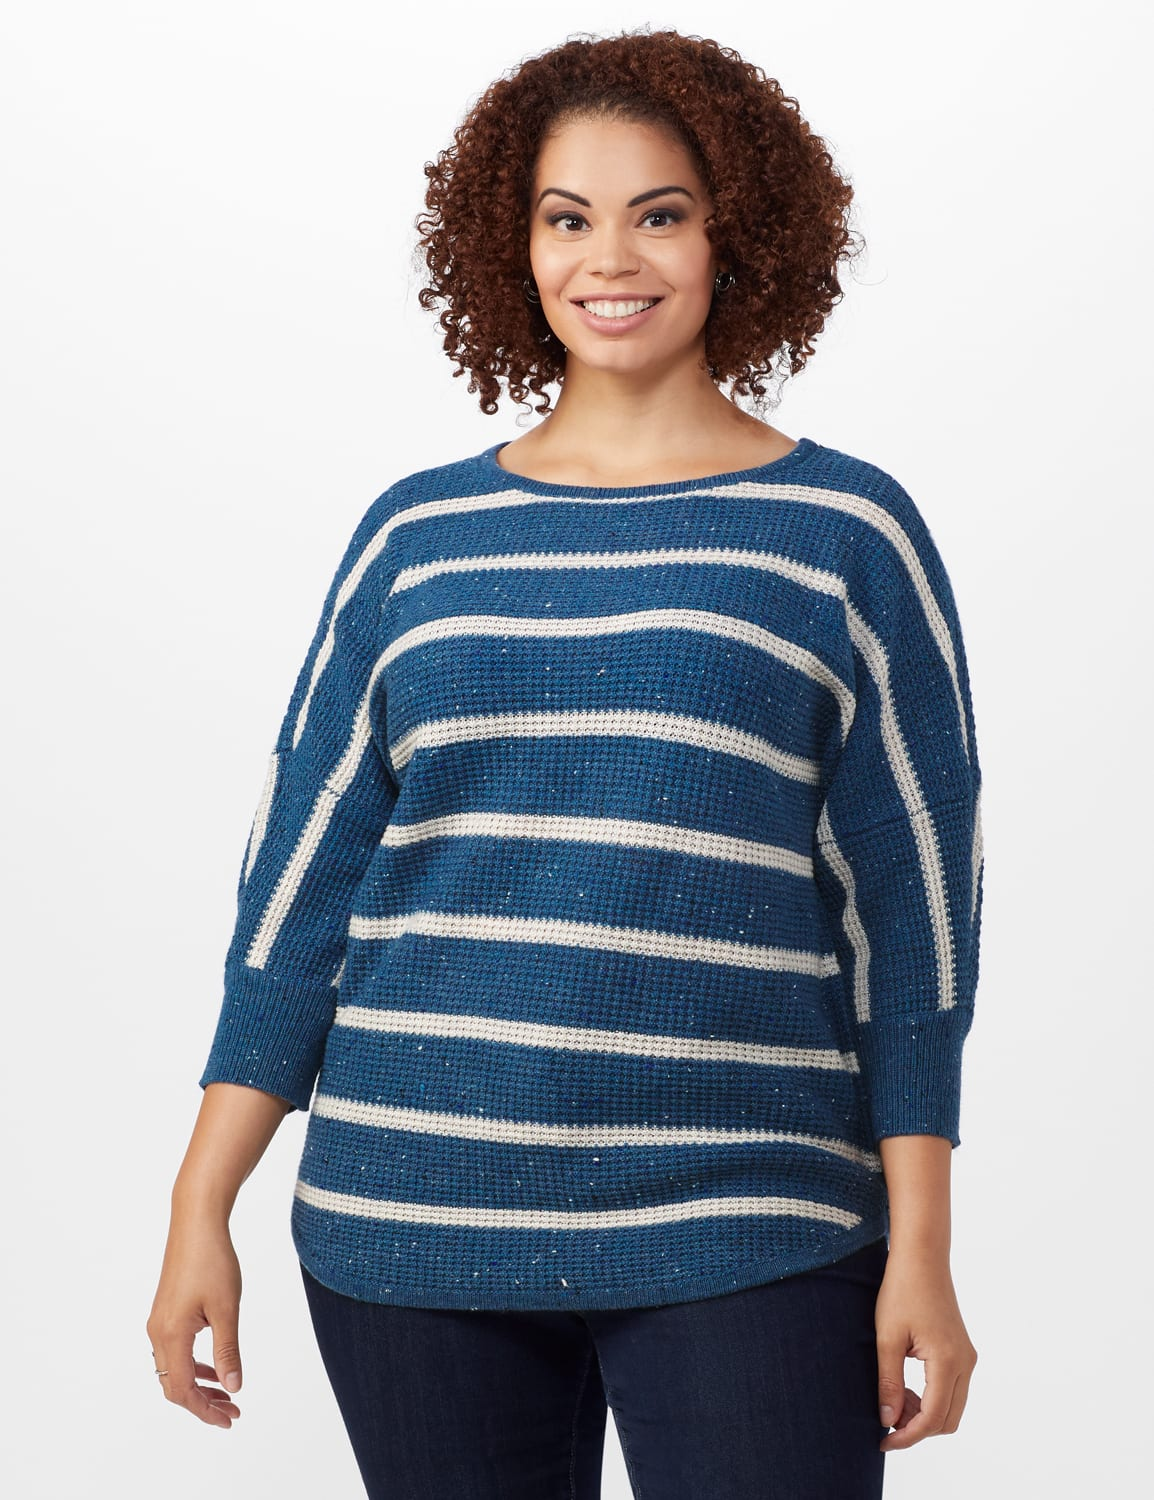 Westport Stripe Curved Hem Sweater - Plus - Vintage Denim/Silver - Front